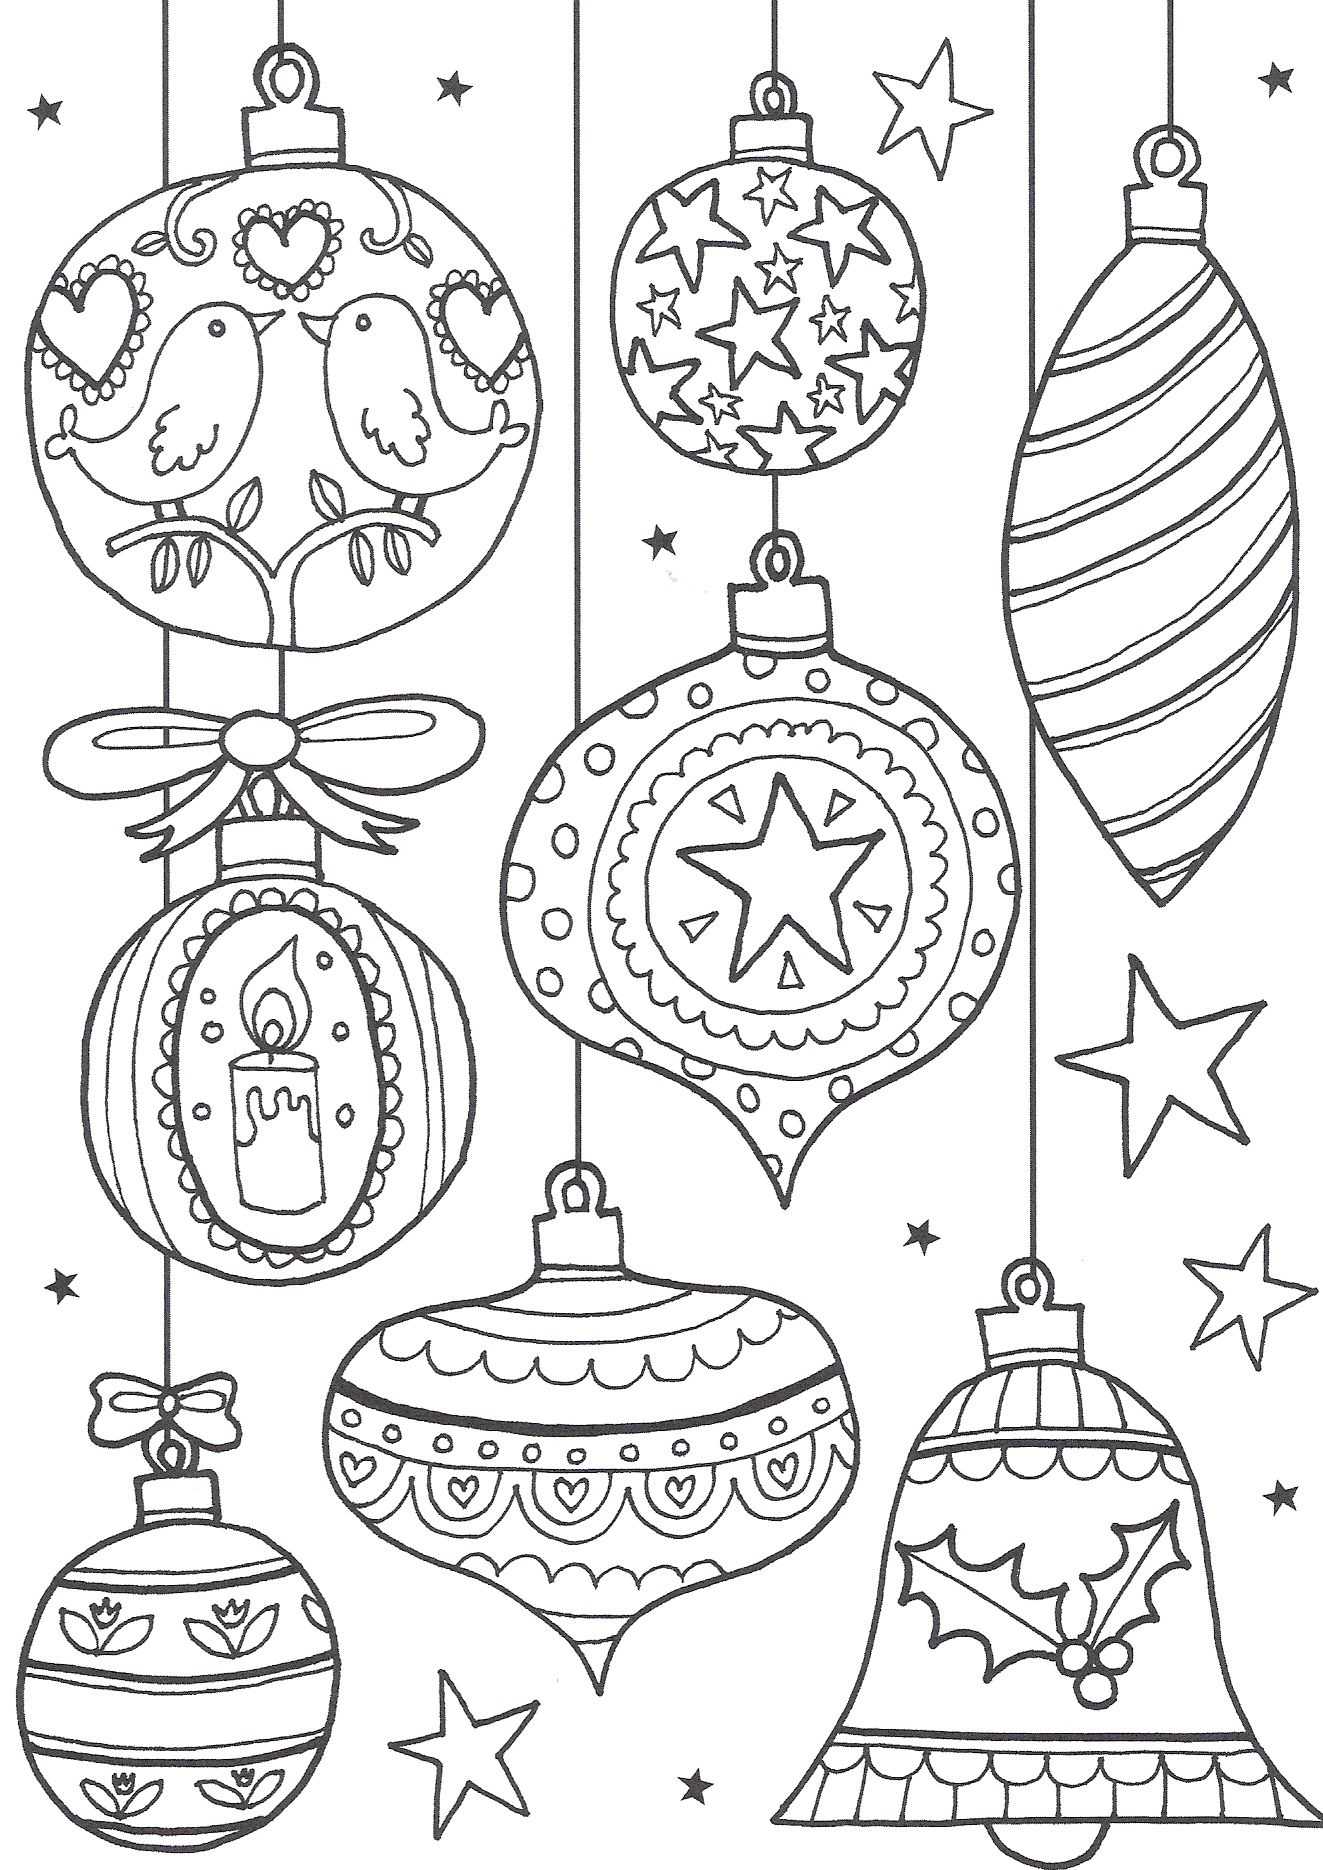 Christmas Coloring Free Printables With Colouring Pages For Adults The Ultimate Roundup